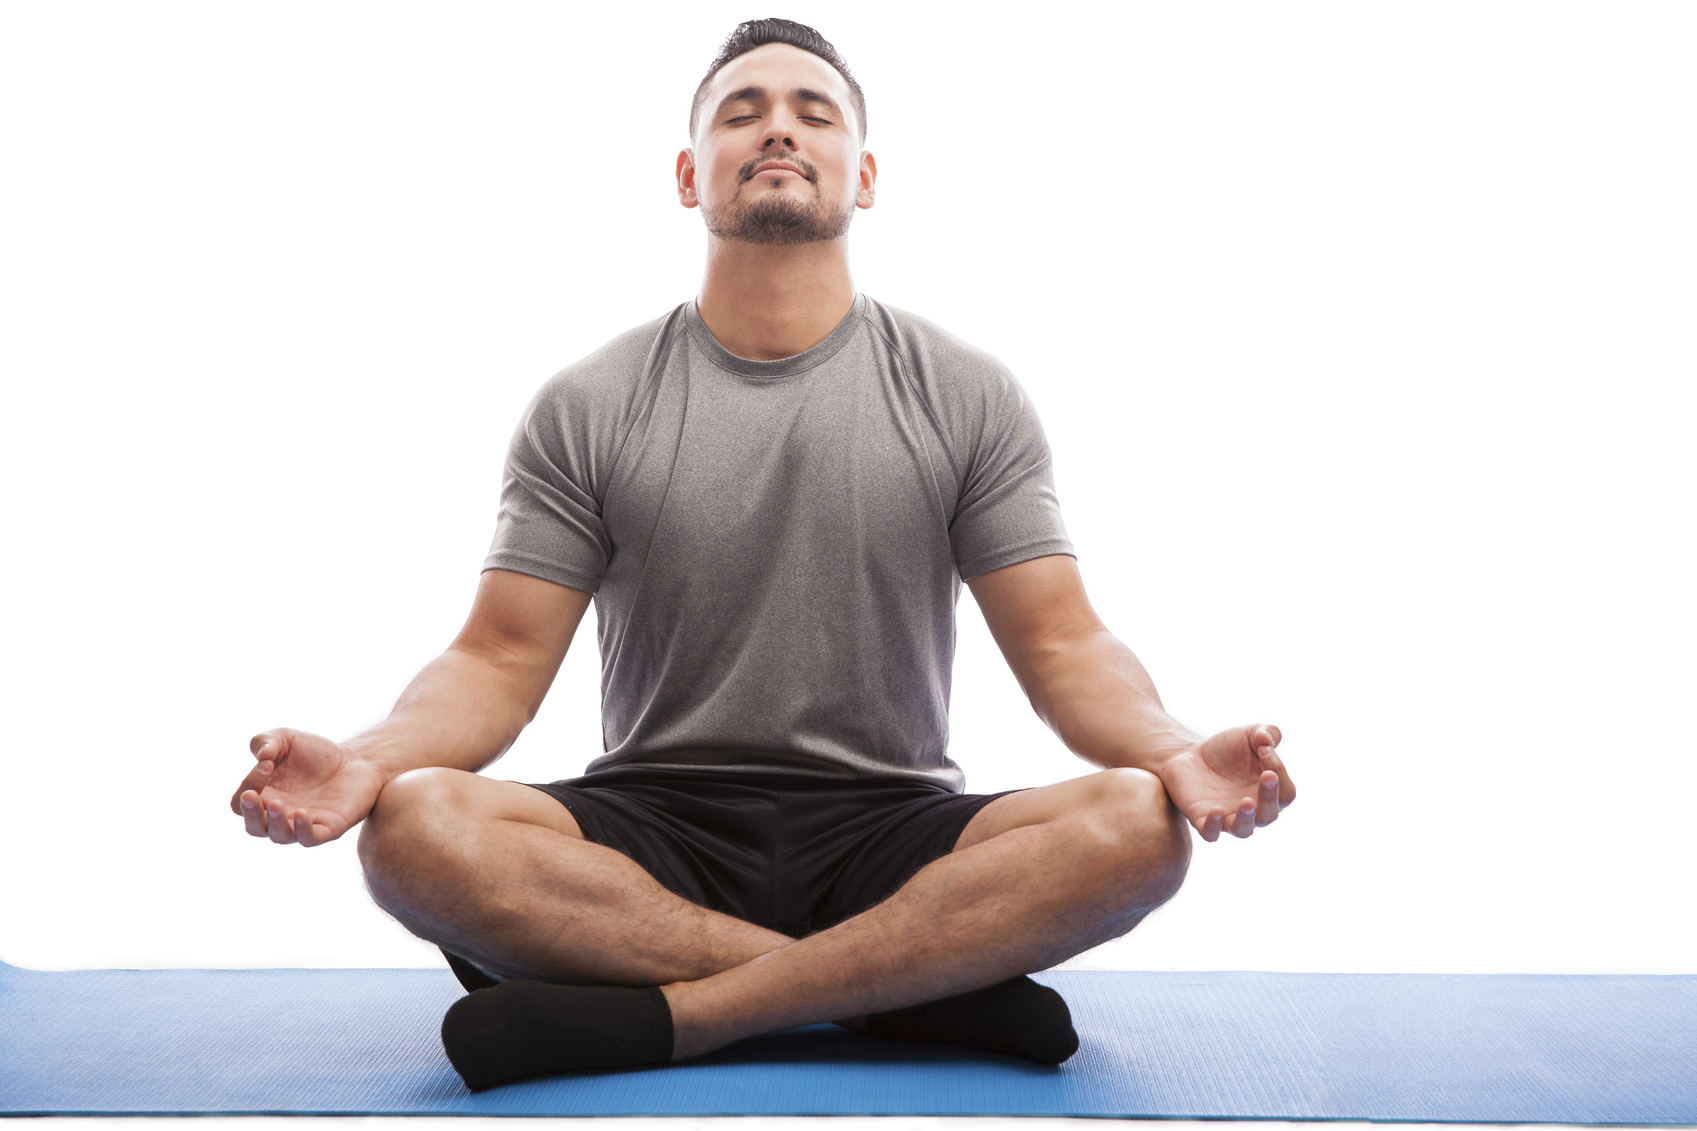 Young man in sporty outfit doing yoga and meditating on an exercise mat against a white background